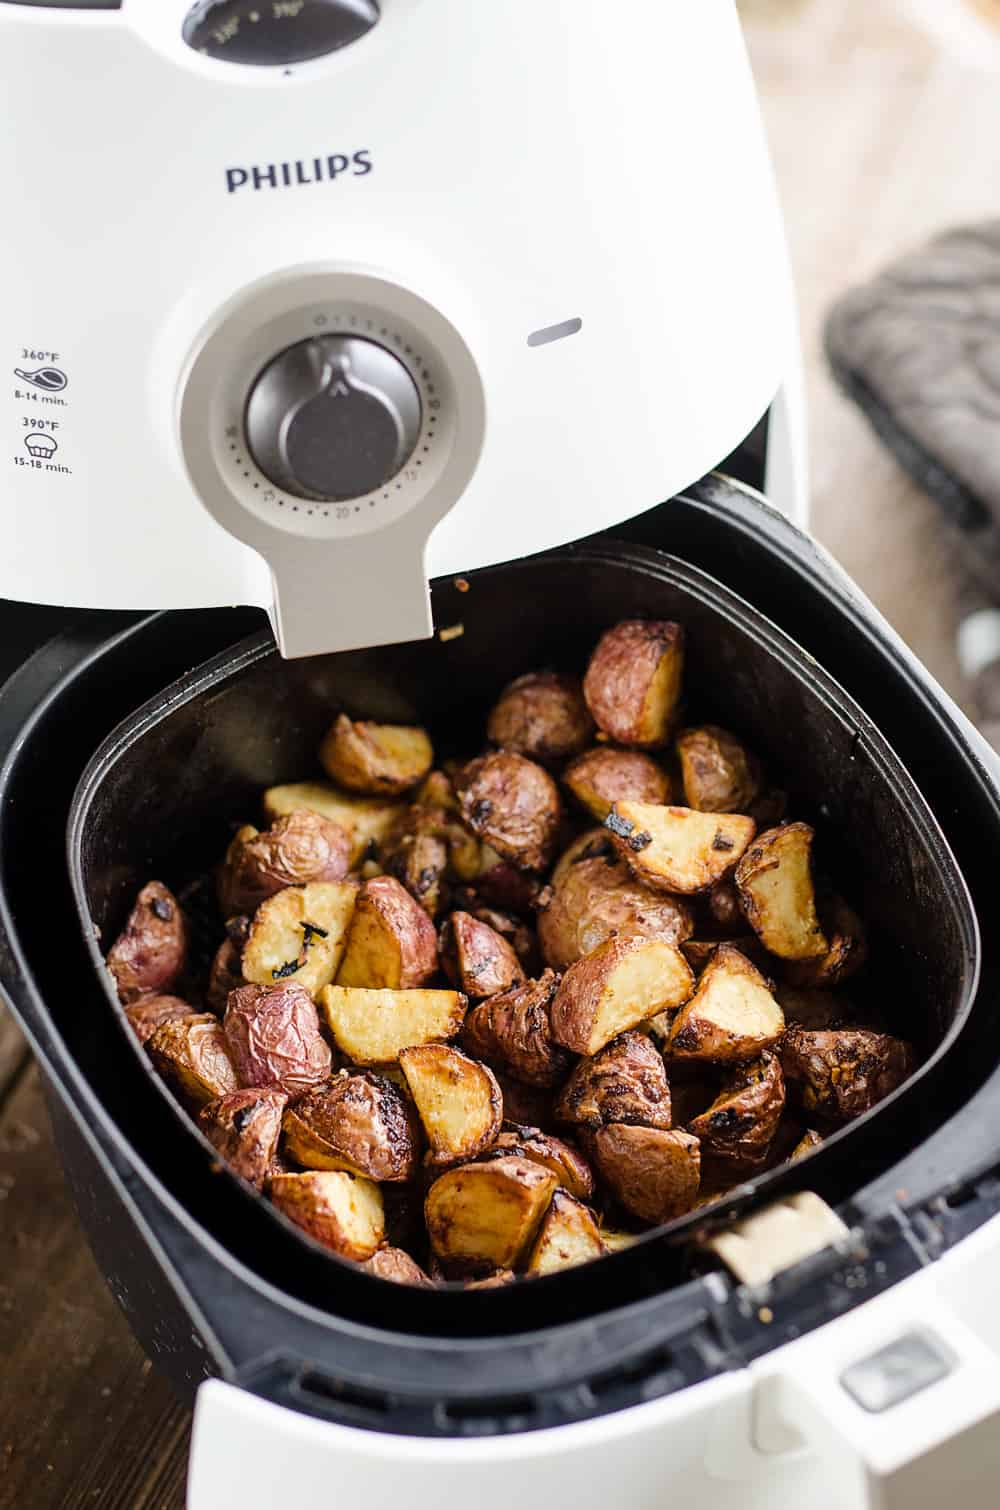 Airfryer Crispy Roasted Onion Potatoes in the Airfryer basket